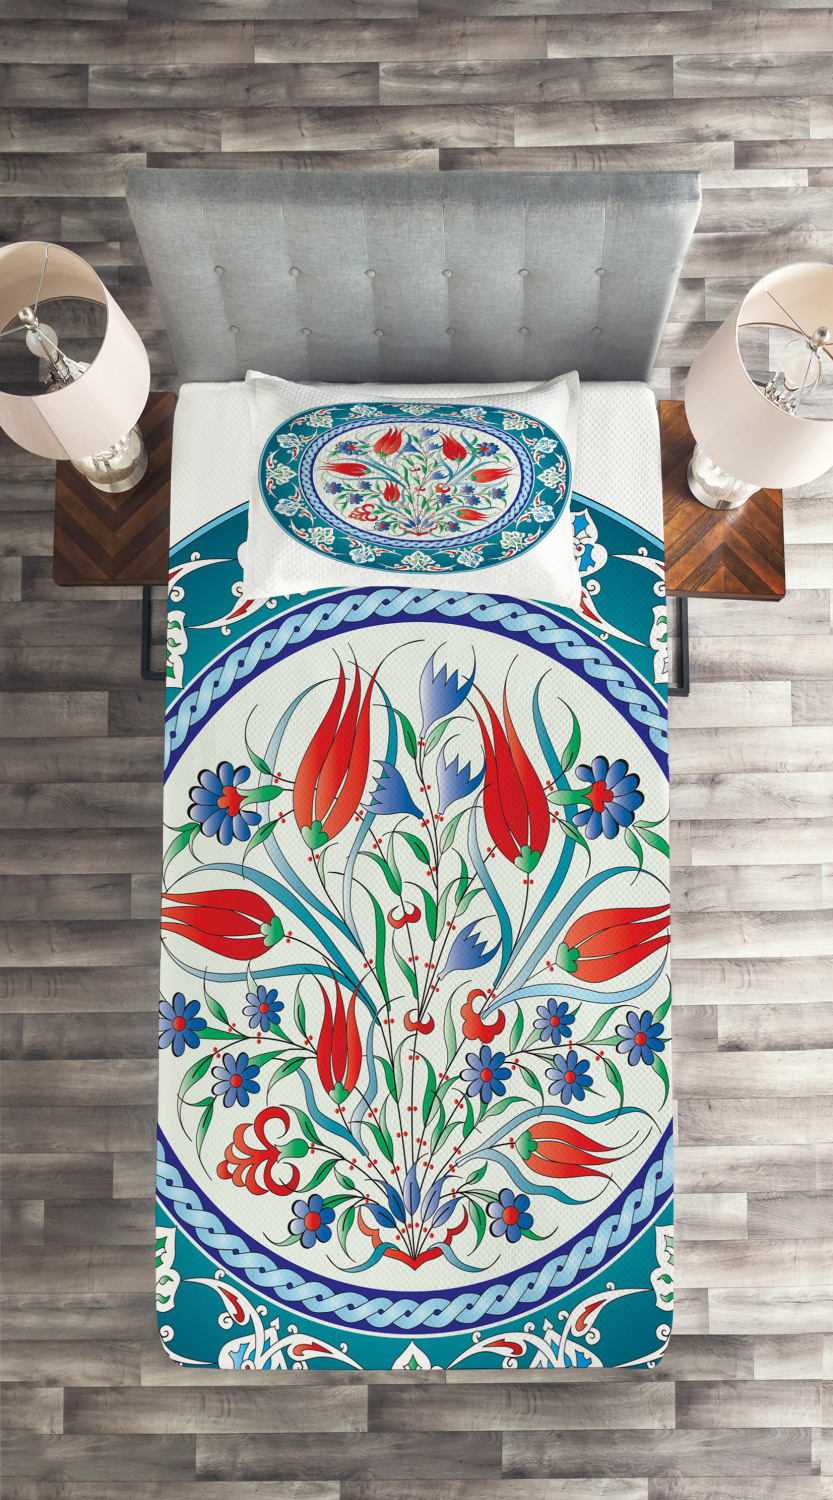 Teal Quilted Coverlet /& Pillow Shams Set Turkish Tulip Floral Art Print